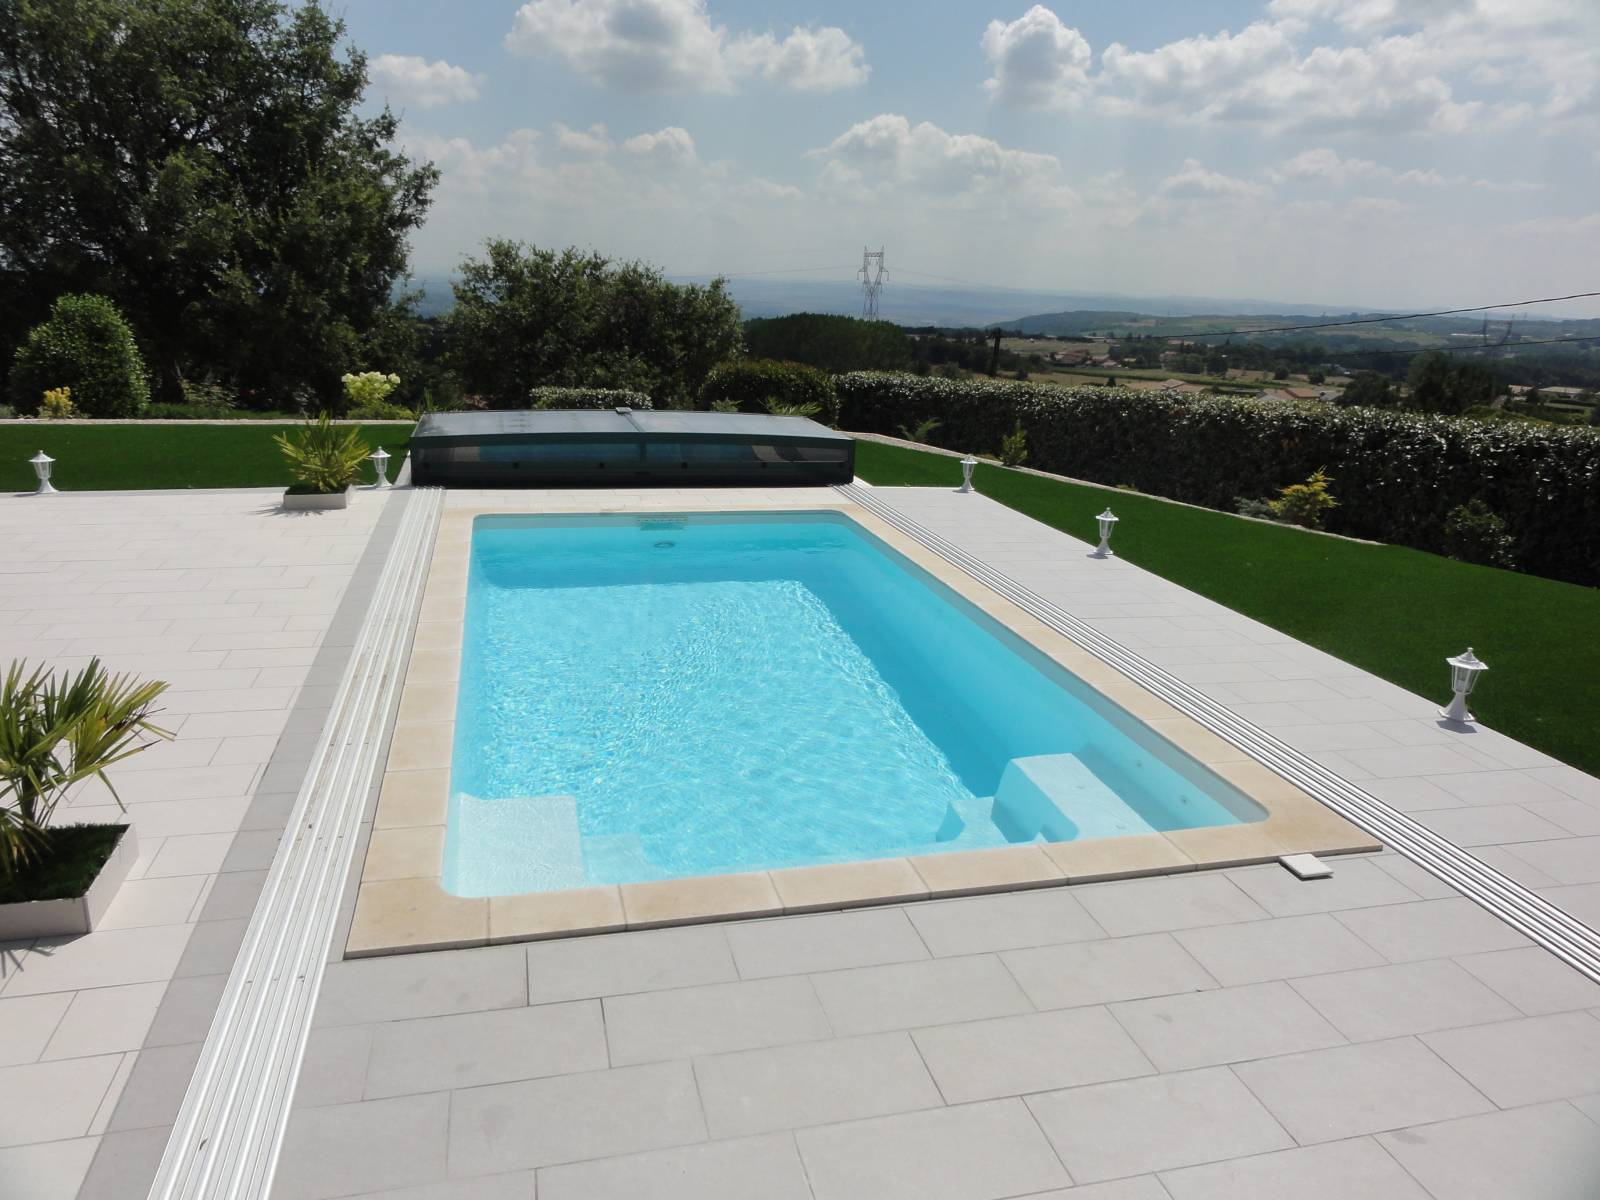 Installation de piscine coque polyester toulon mon for Installation piscine coque